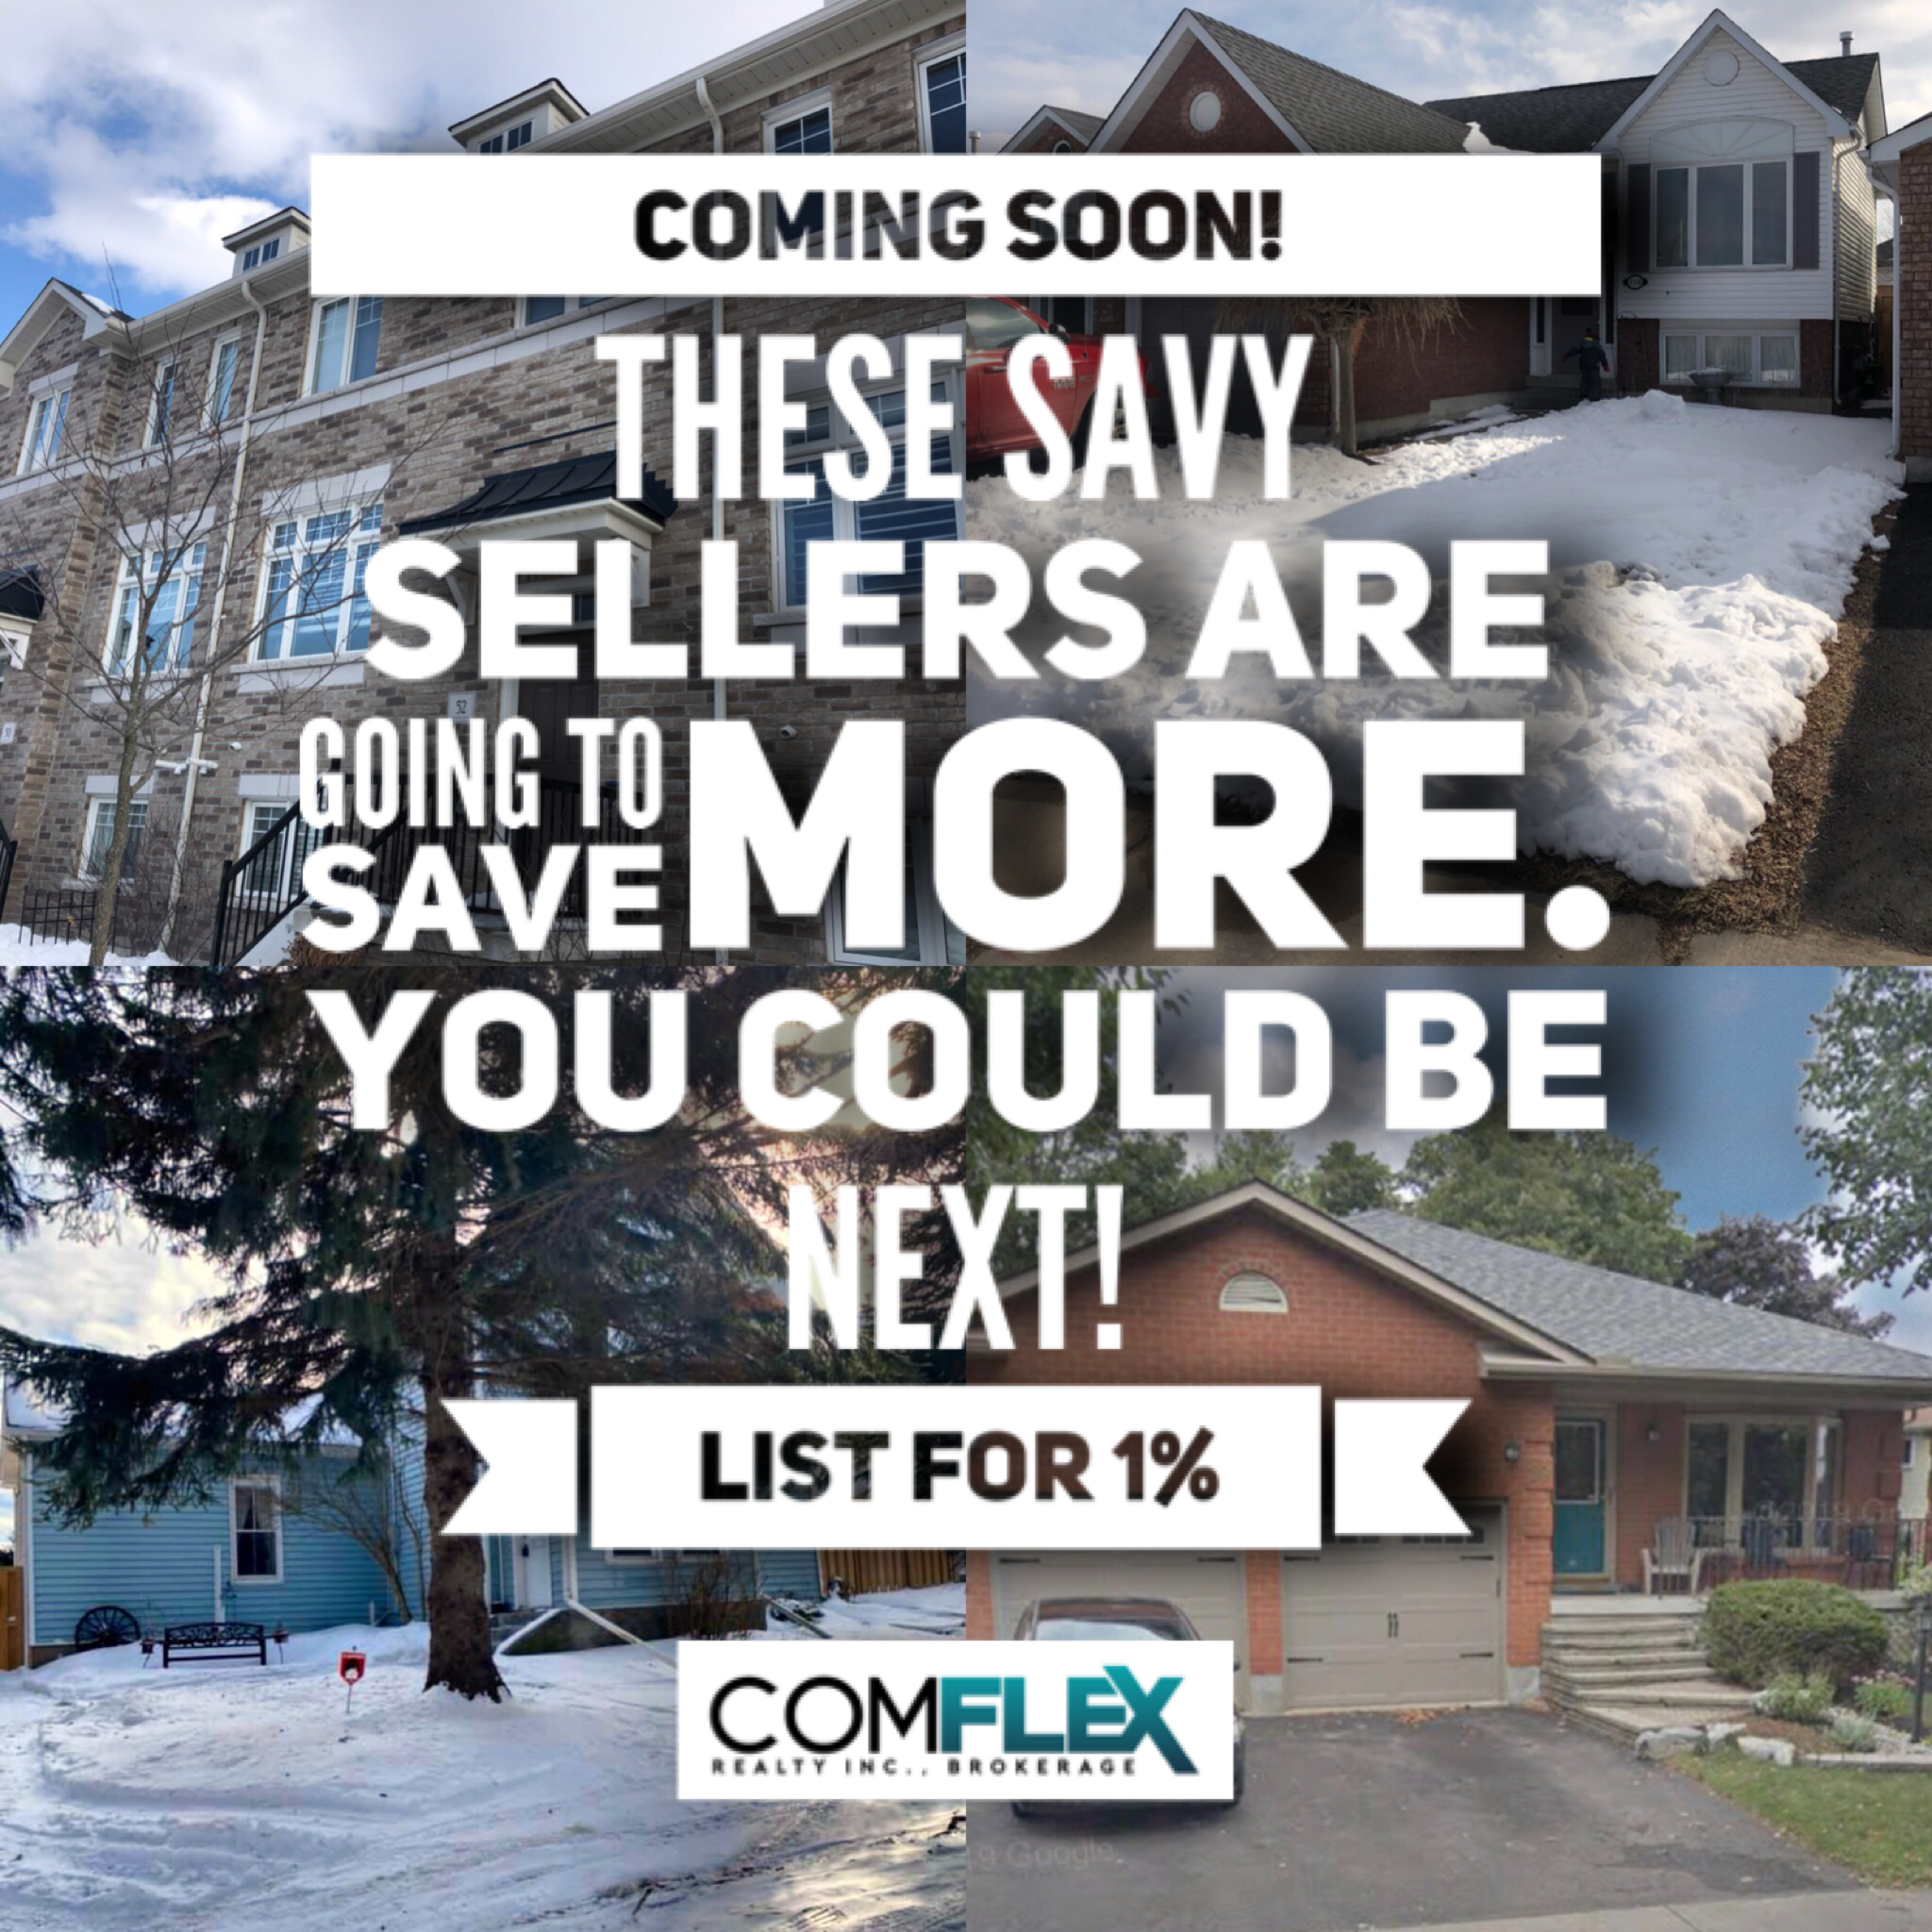 COMING THIS WEEK! THESE CLIENTS ARE READY TO SAVE MORE!